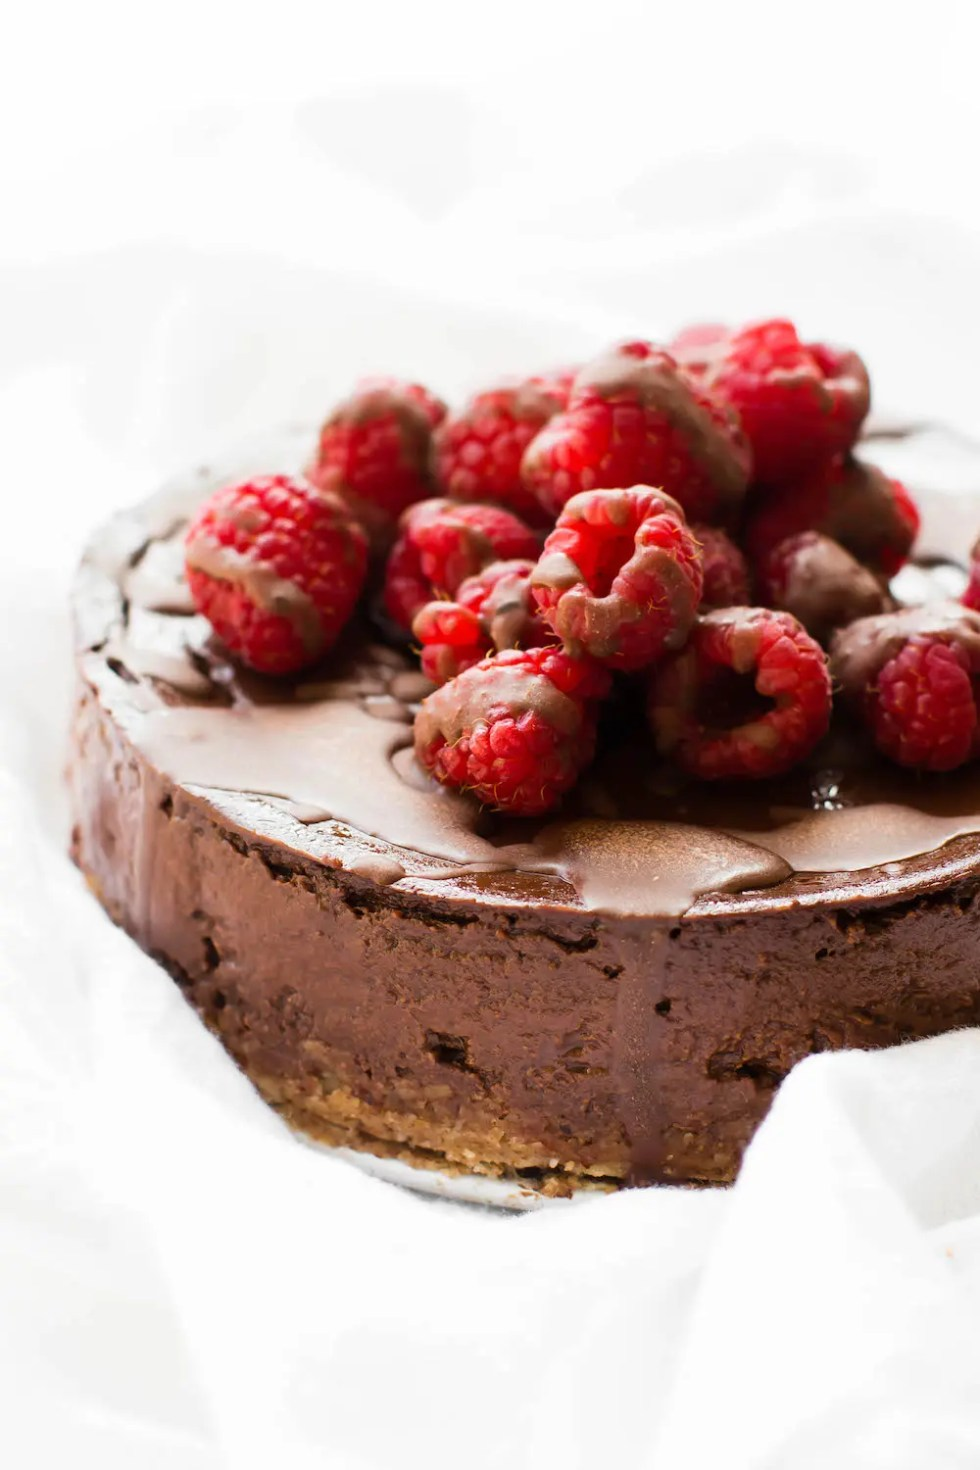 Low Fat Chocolate Mousse CakeSkip To Recipe